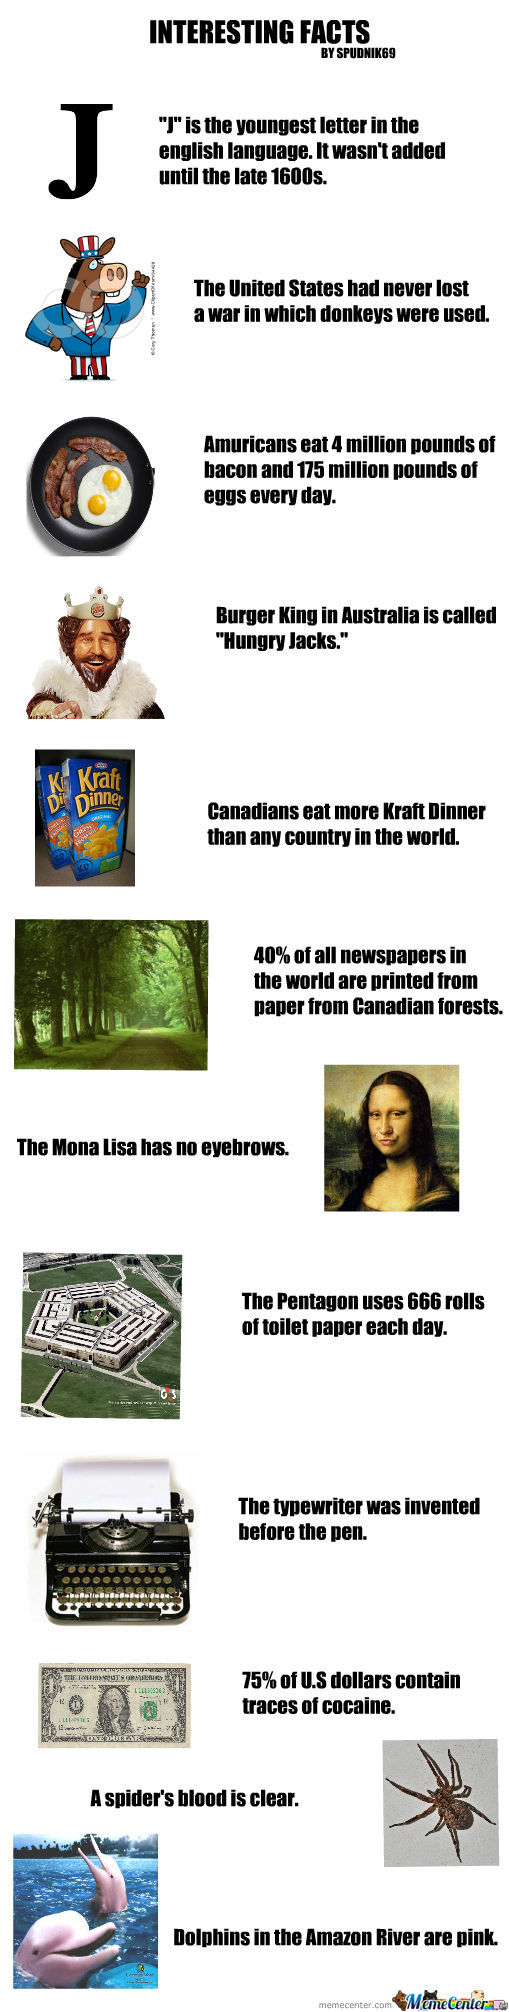 12 Interesting Facts